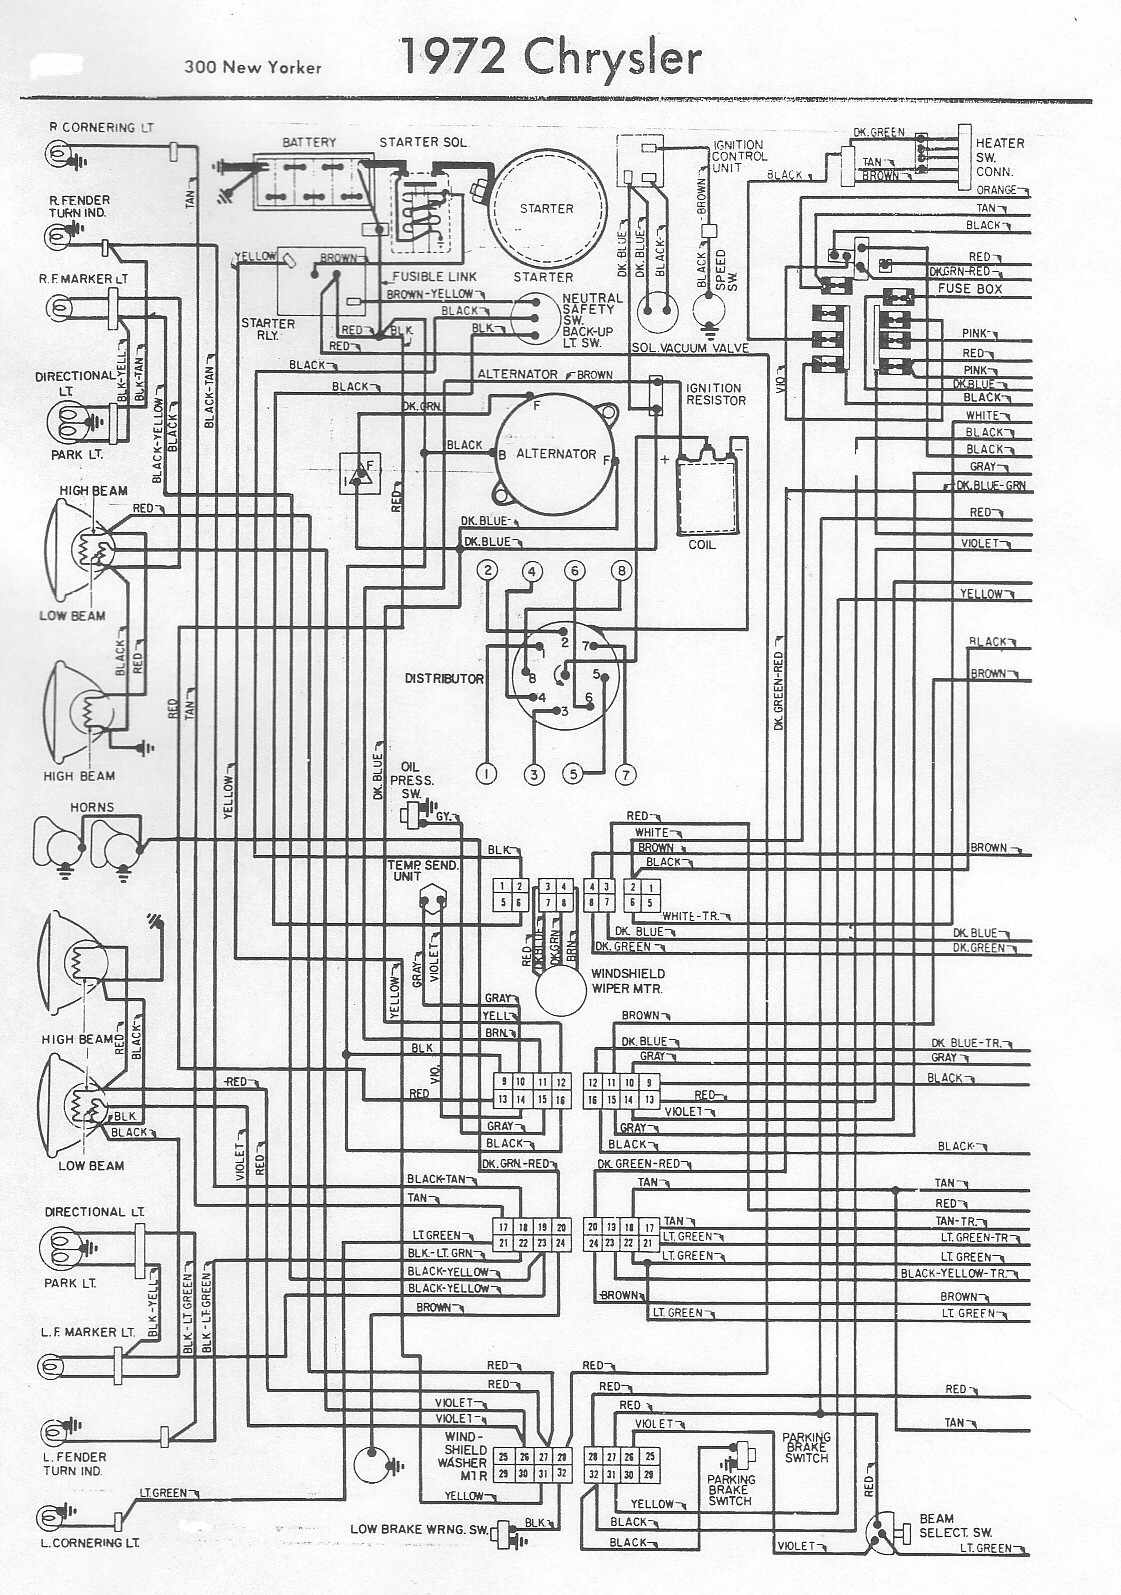 hight resolution of 2005 chrysler 300 wiring schematics wiring diagram hub rh 6 20 4 wellnessurlaub 4you de 2005 chrysler 300 electrical diagram 2005 chrysler 300 starter